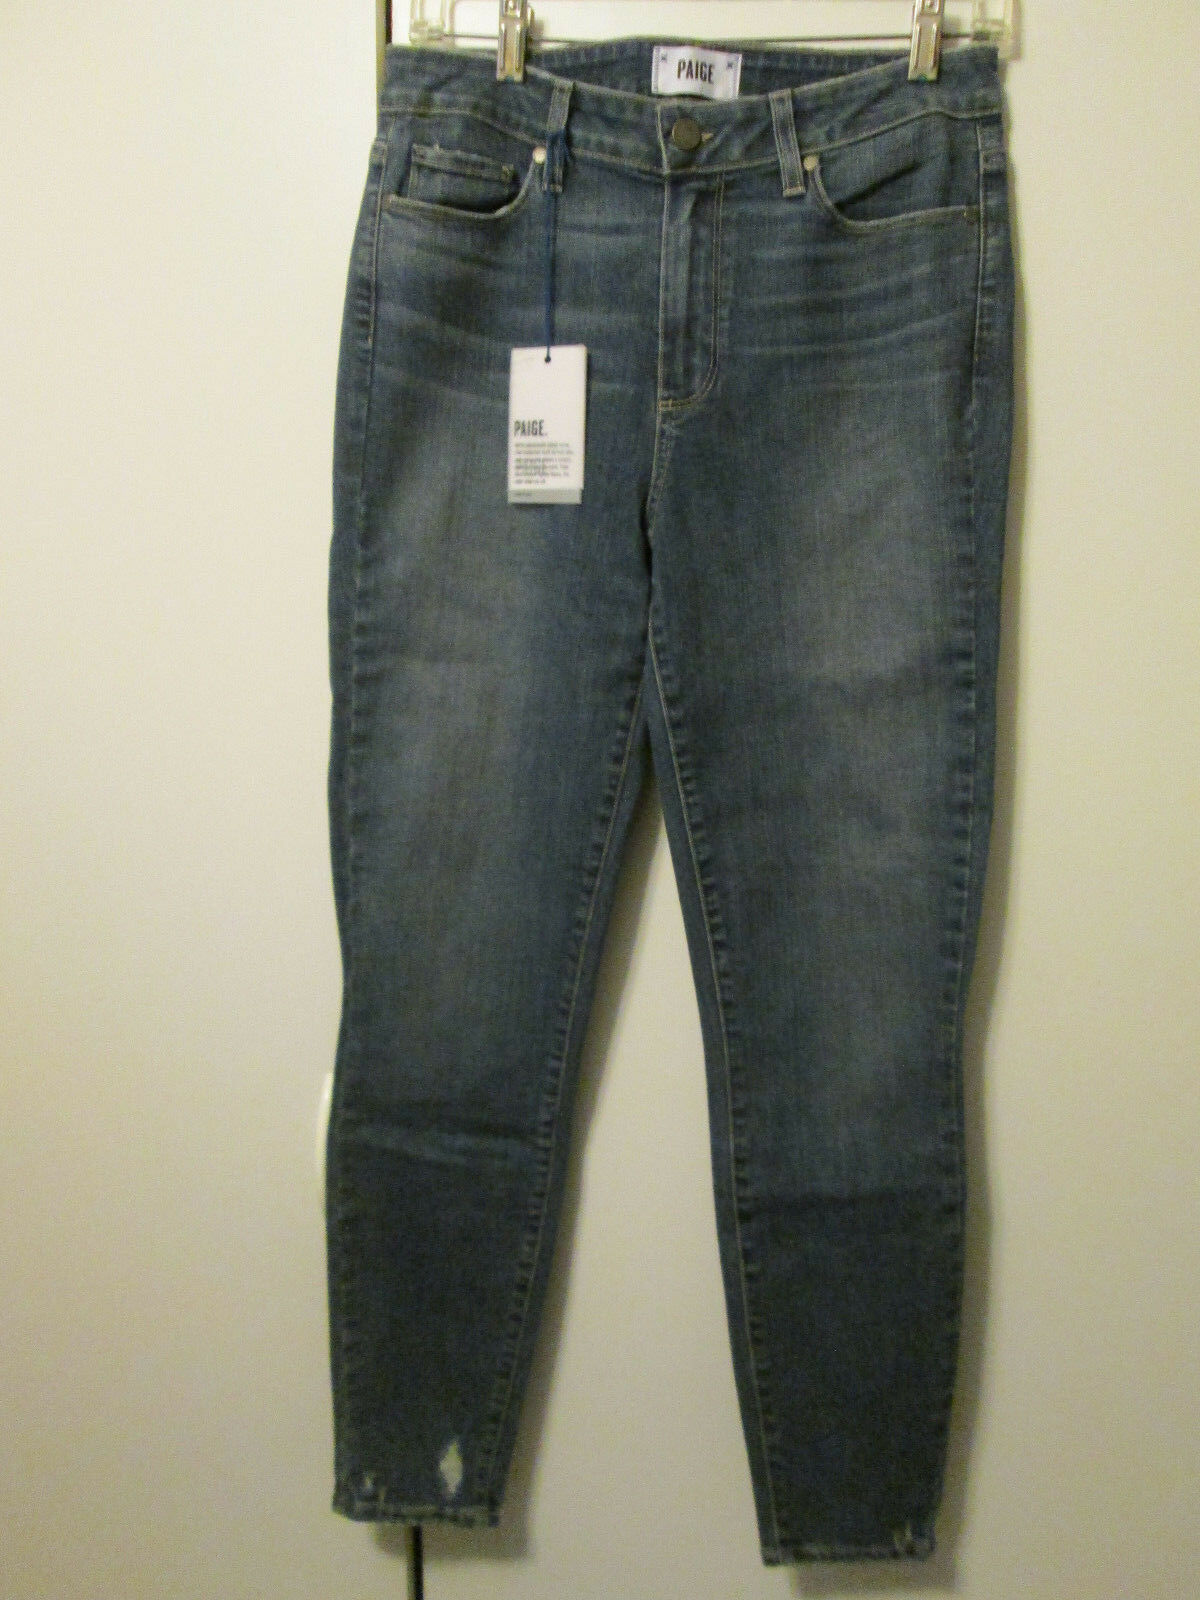 229 Paige Hoxton High Rise Ankle Skinny Jeans Gal Destructed Ankles Size 29 NWT